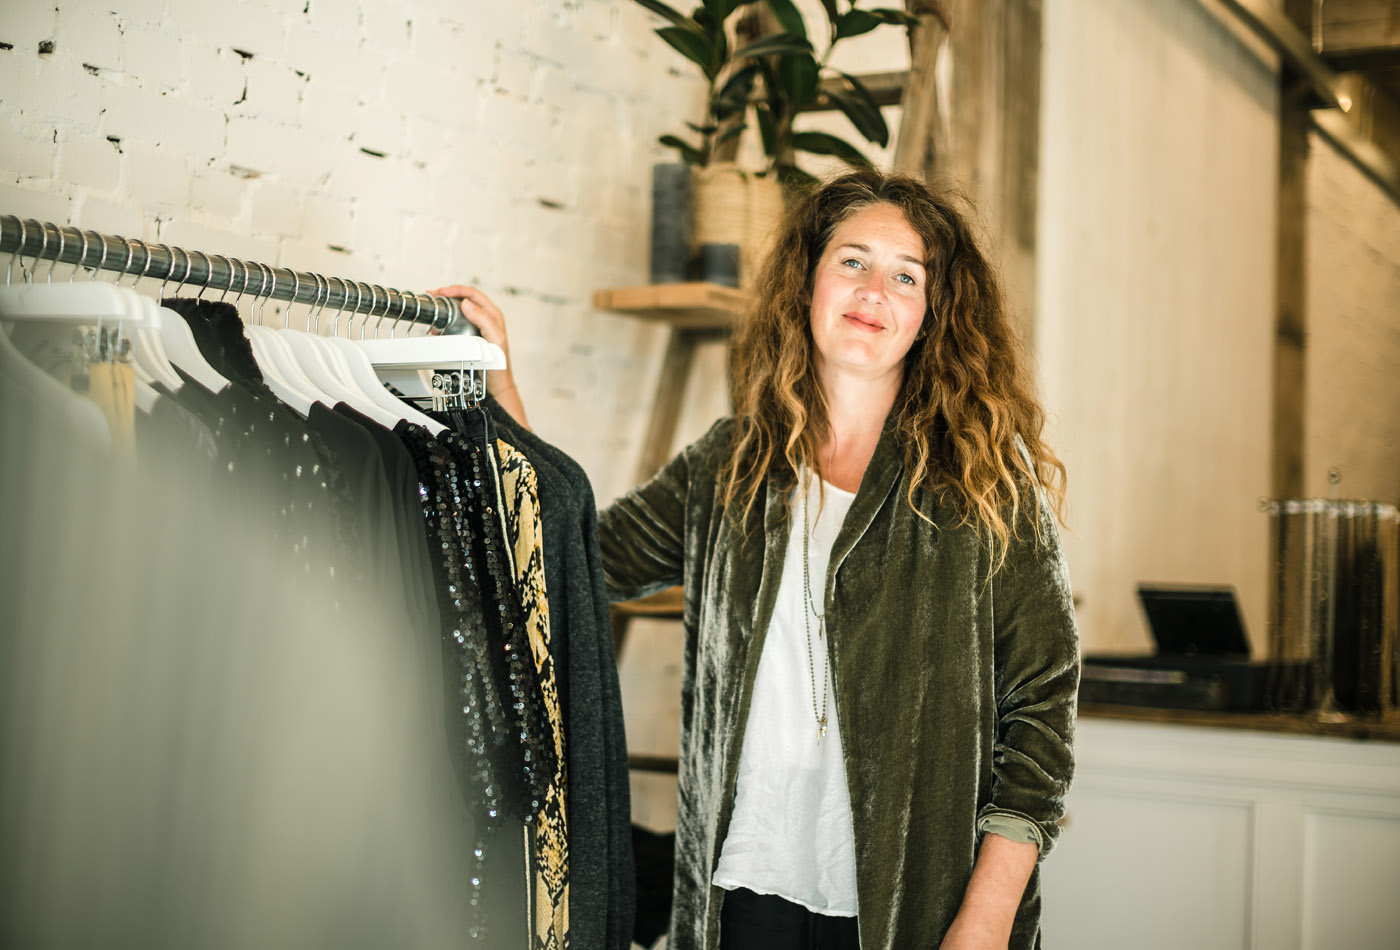 Emma Vowles, Founder and Creative Director of Busby & Fox